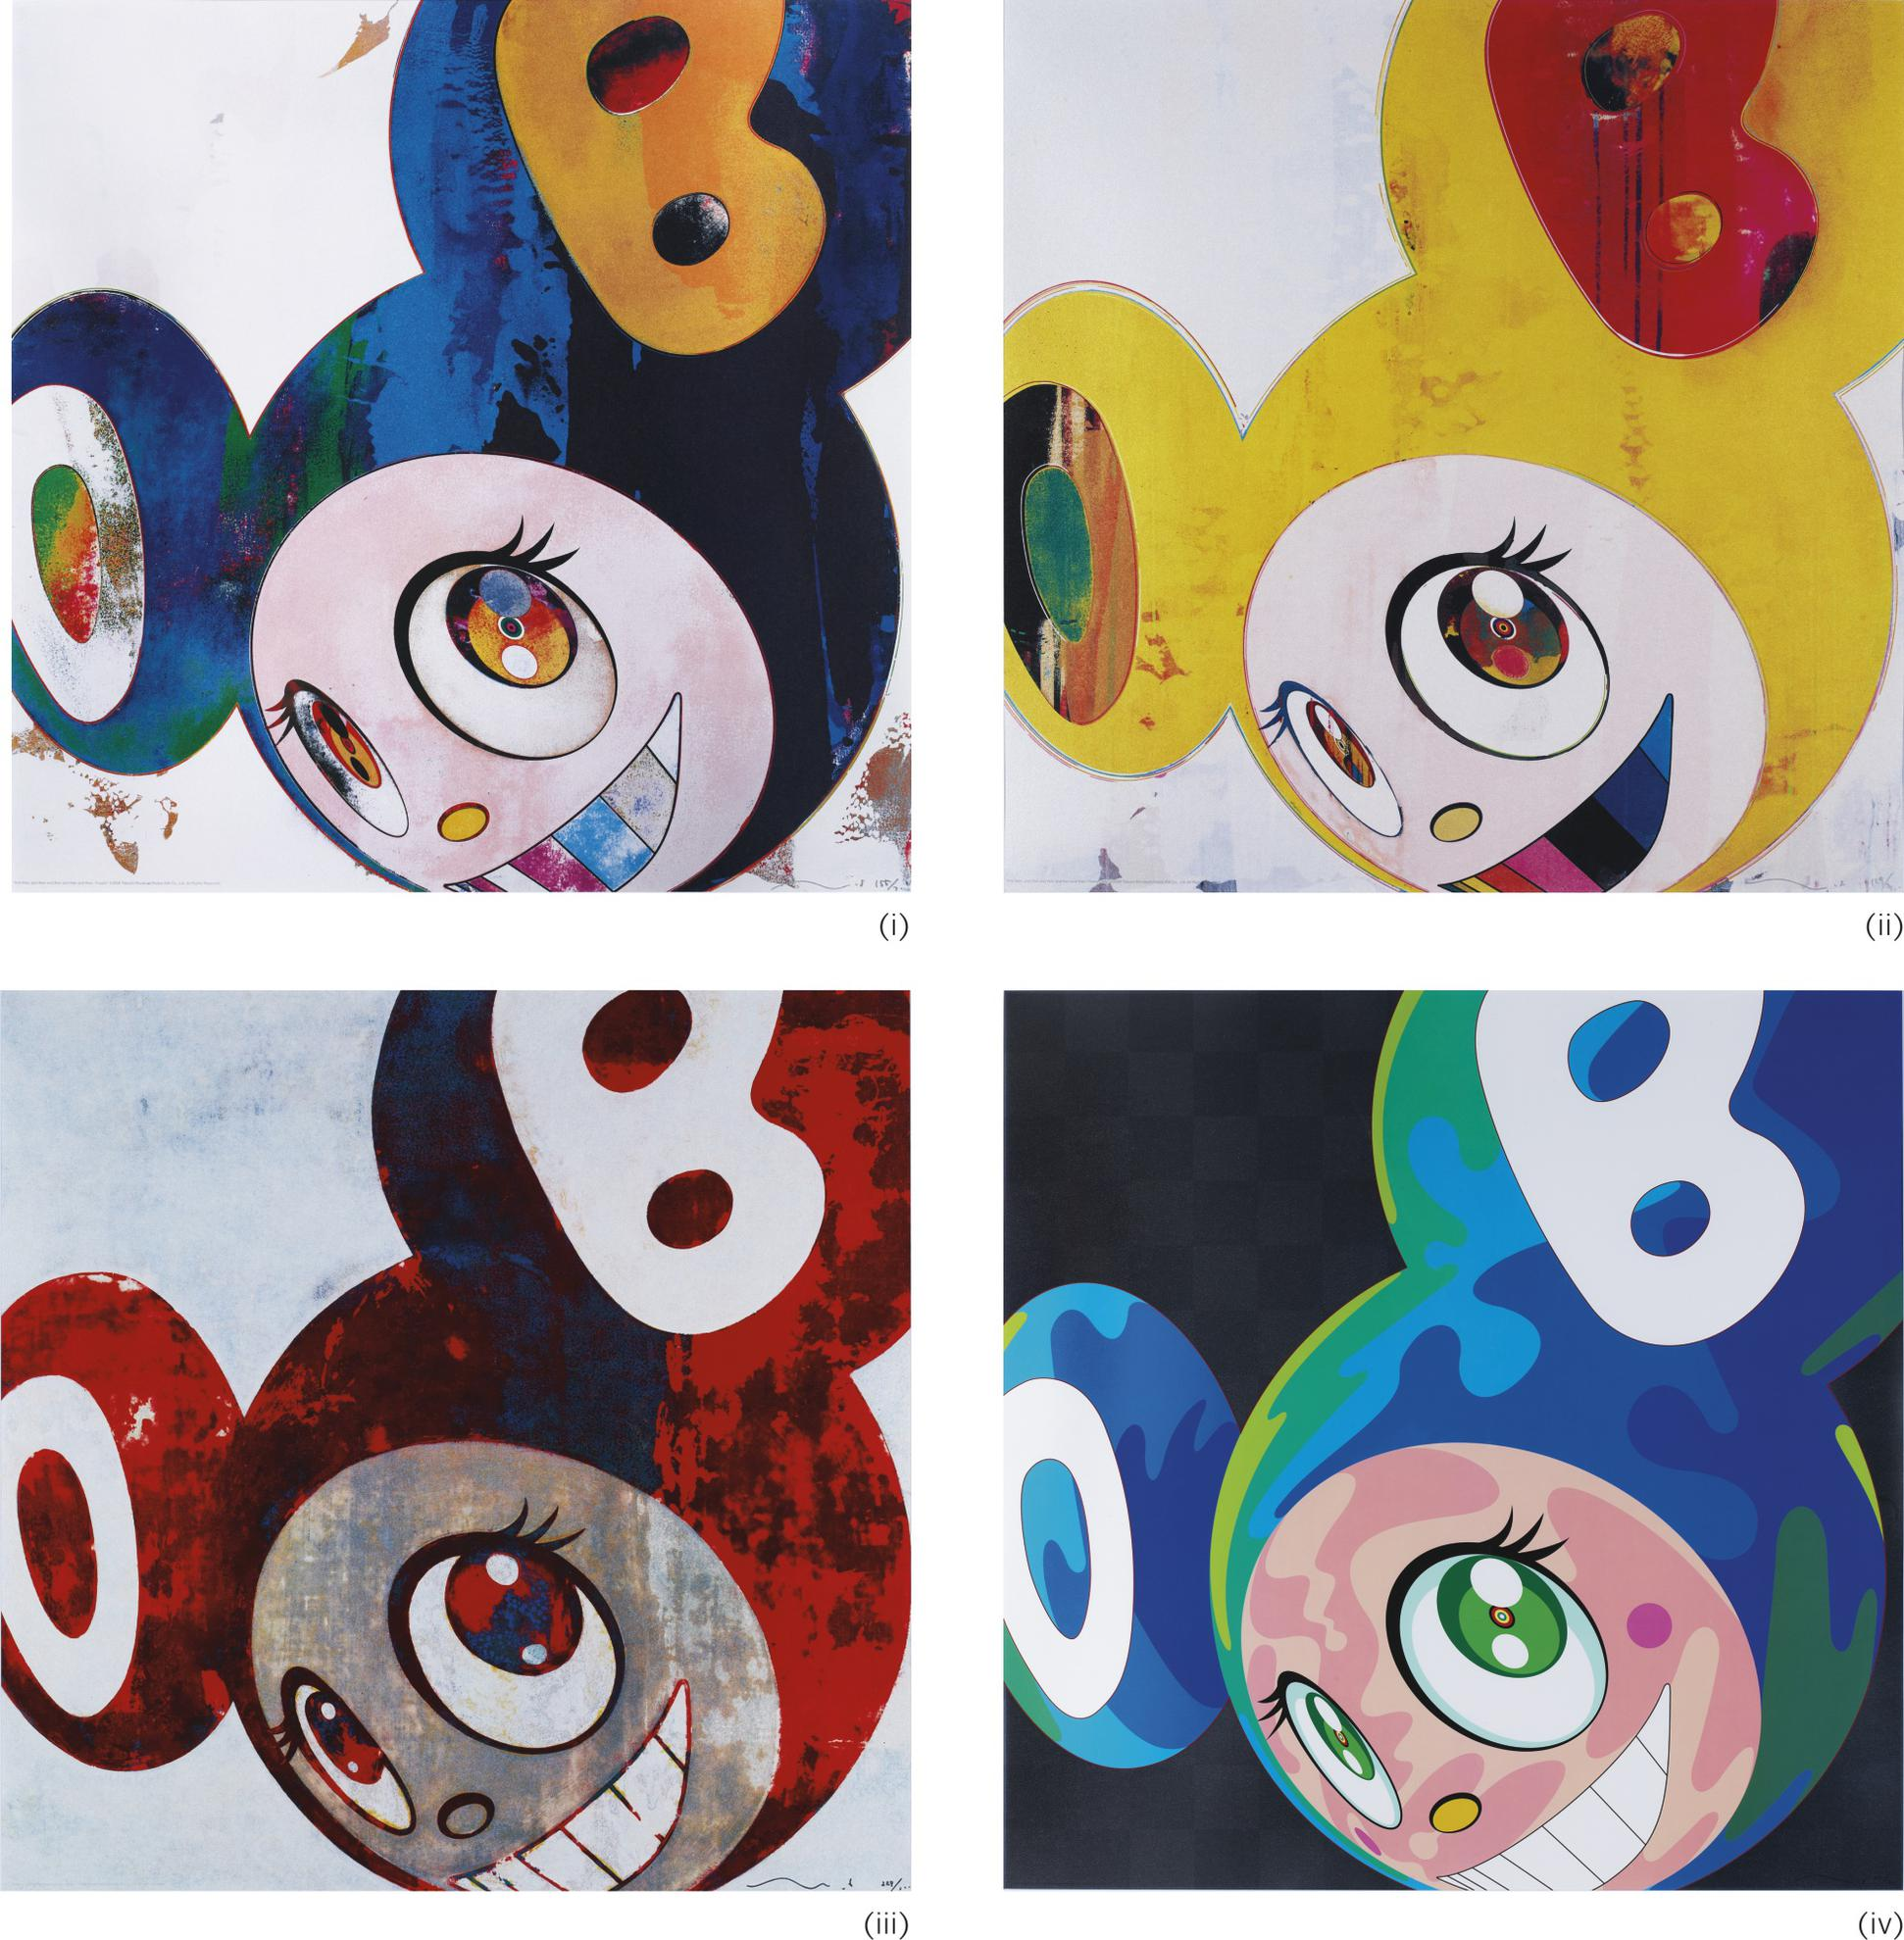 Takashi Murakami-And Then And Then And Then And Then And Then: I. Cream/ Ii. Yellow Jelly/ Iii. Blue-Red/ Iv. Melting Dob (Four Works)-2006